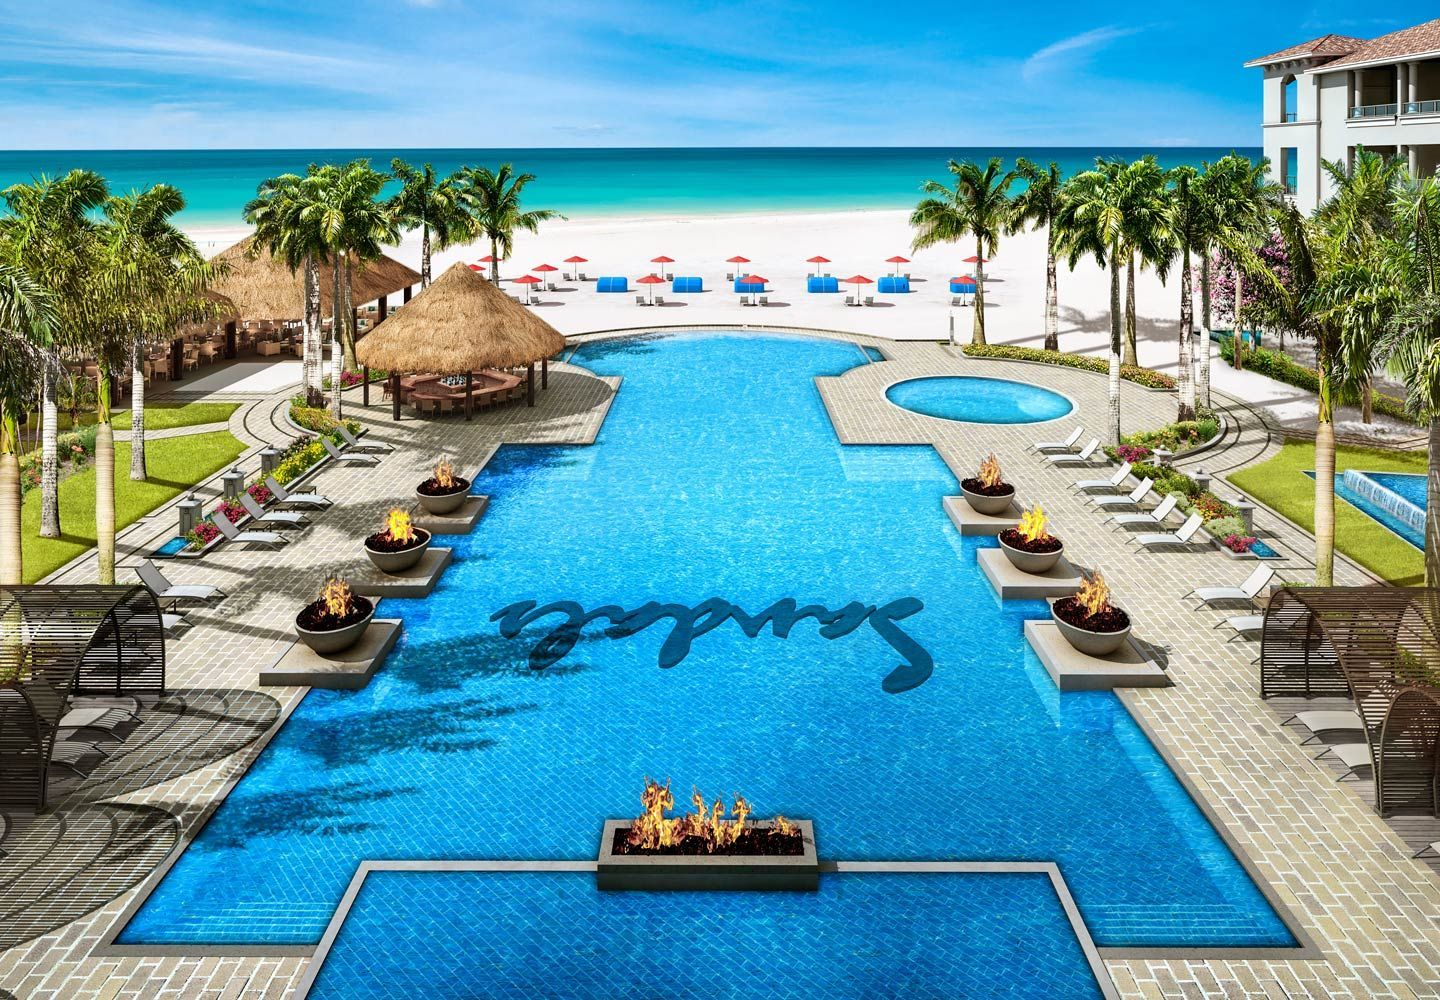 Best All-Inclusive Caribbean Resorts for Couples in 2020